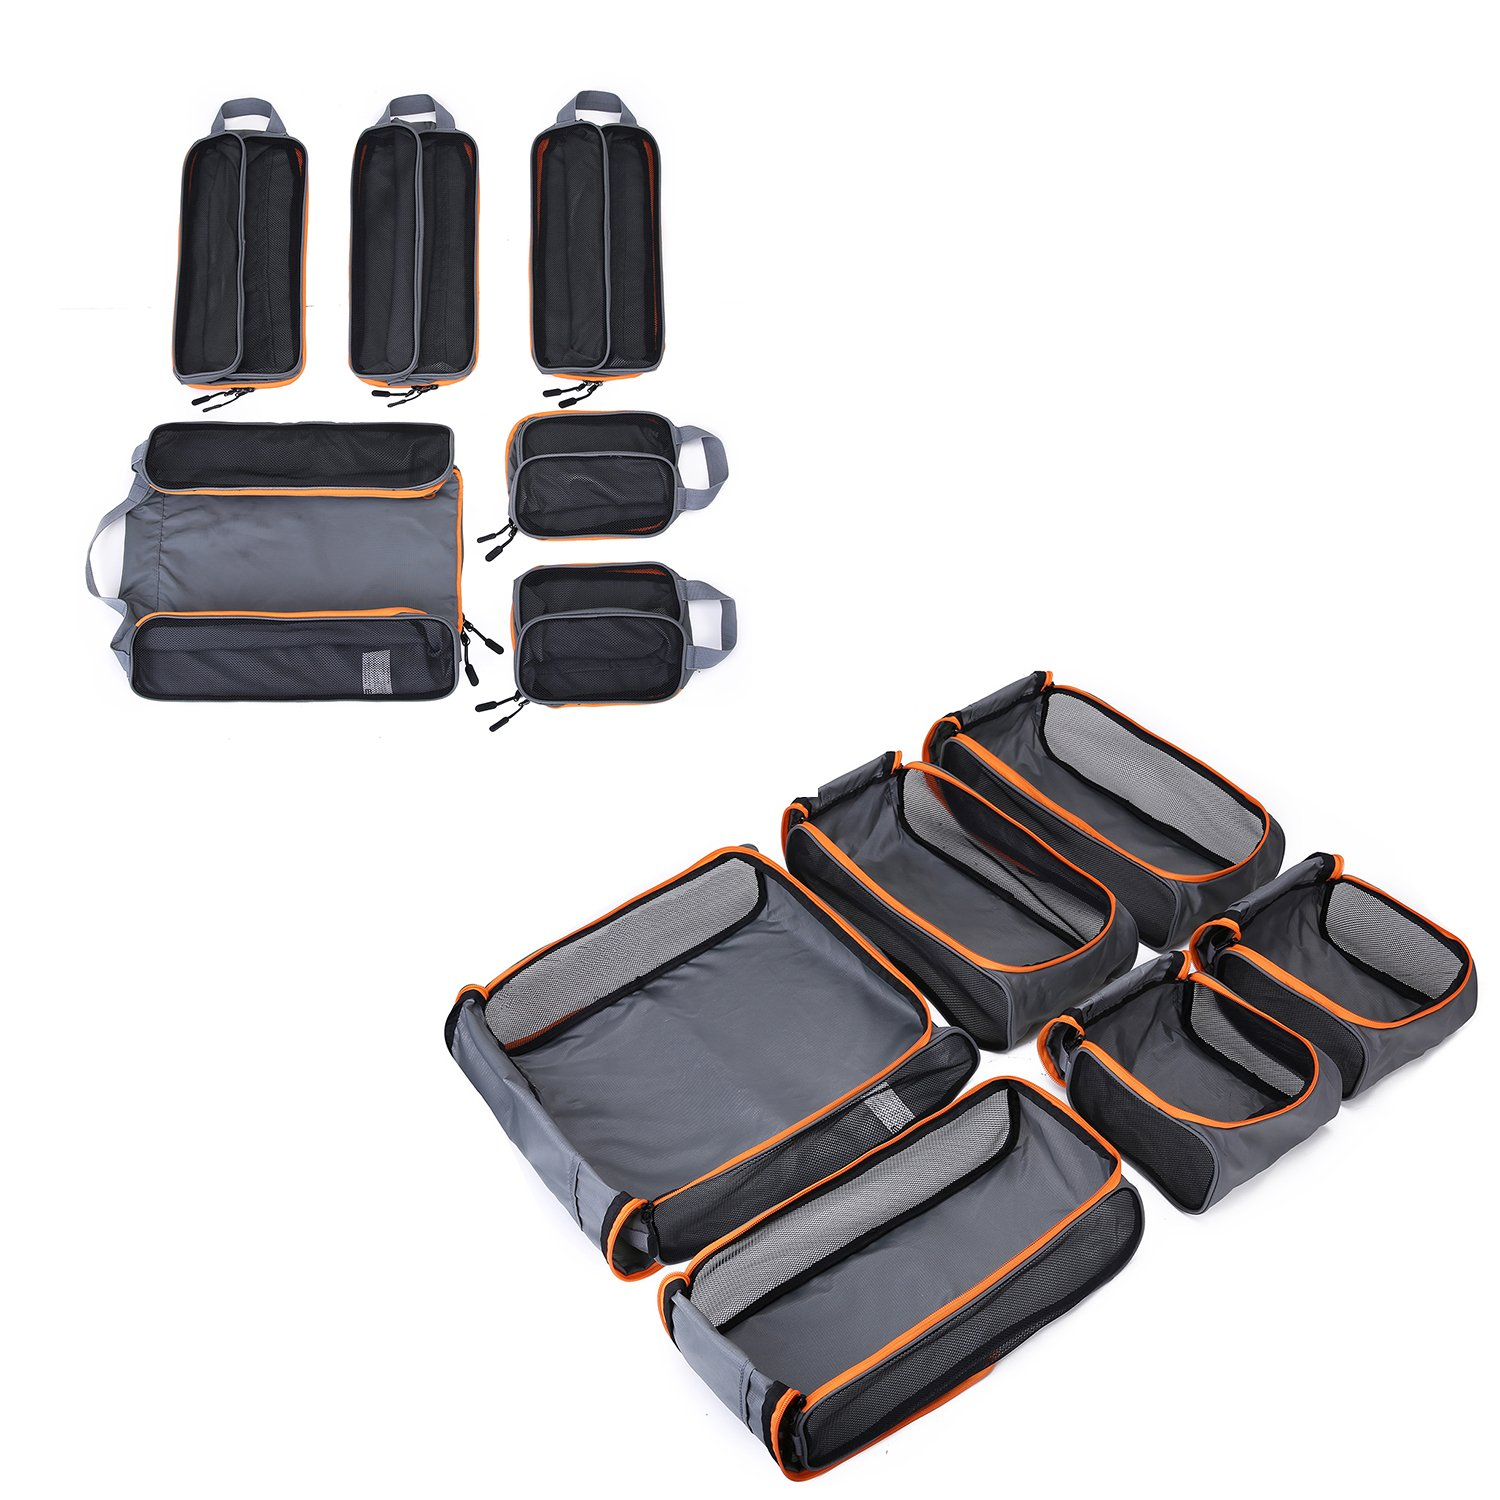 BAGSMART 6 Sets Packing Cubes 3 Sizes Portable Travel Luggage Organizer for Carry-on Accessories by BAGSMART (Image #3)